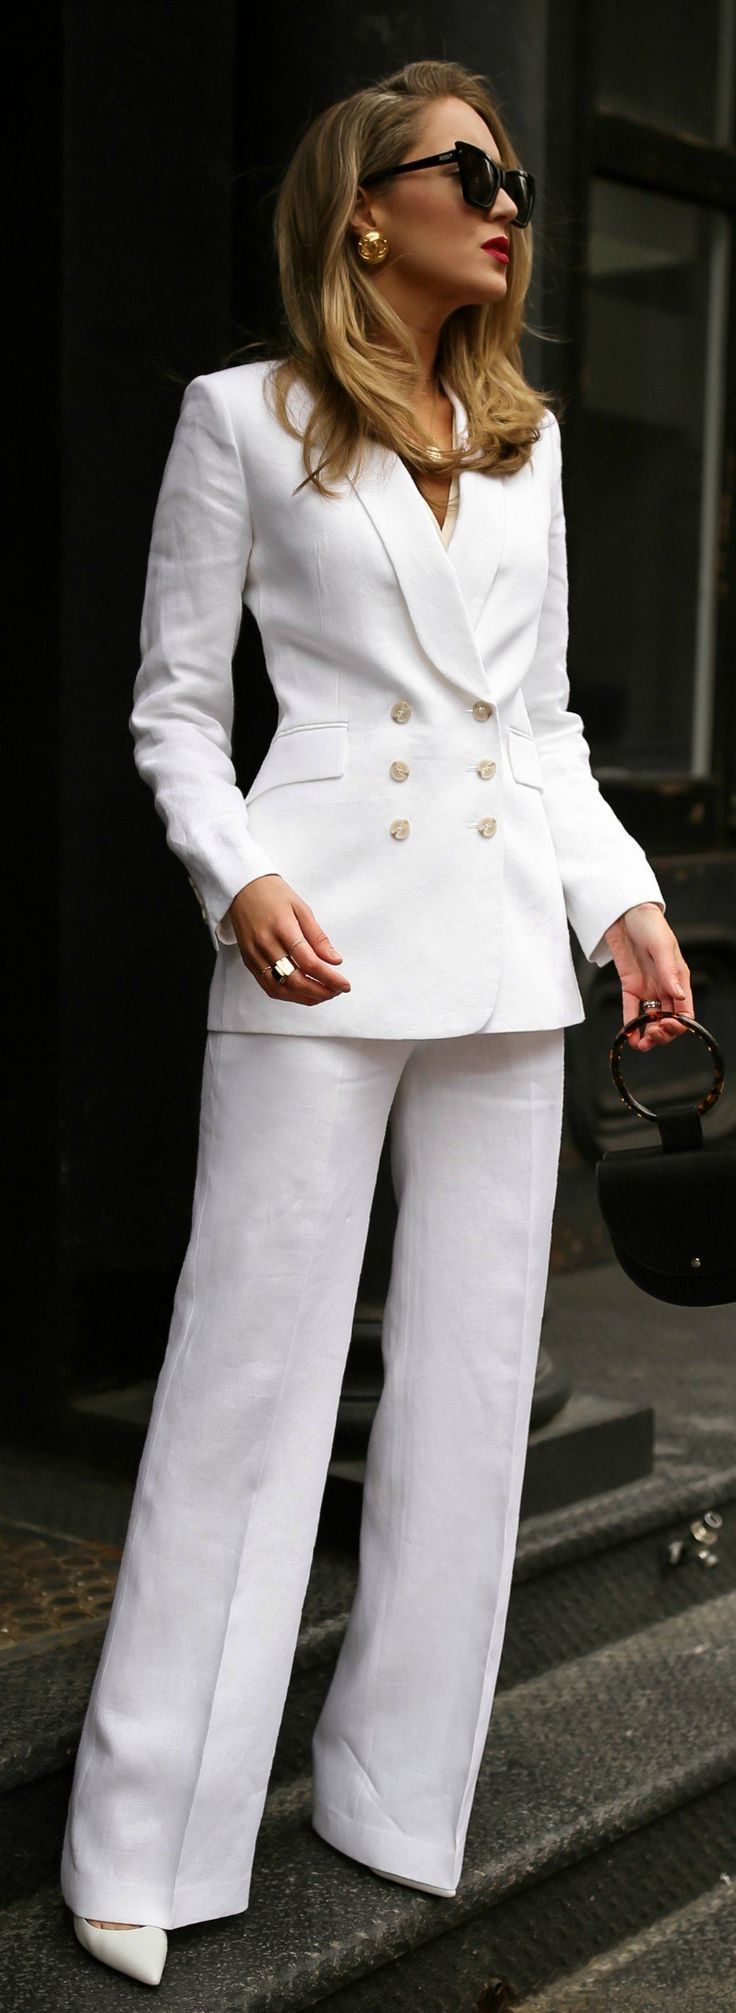 Spring MustHave The White Linen Suit  MEMORANDUM  NYC Fashion  Lifestyle Blog for the Working G Spring musthaves with theorypin  coordinating white linen double breasted...